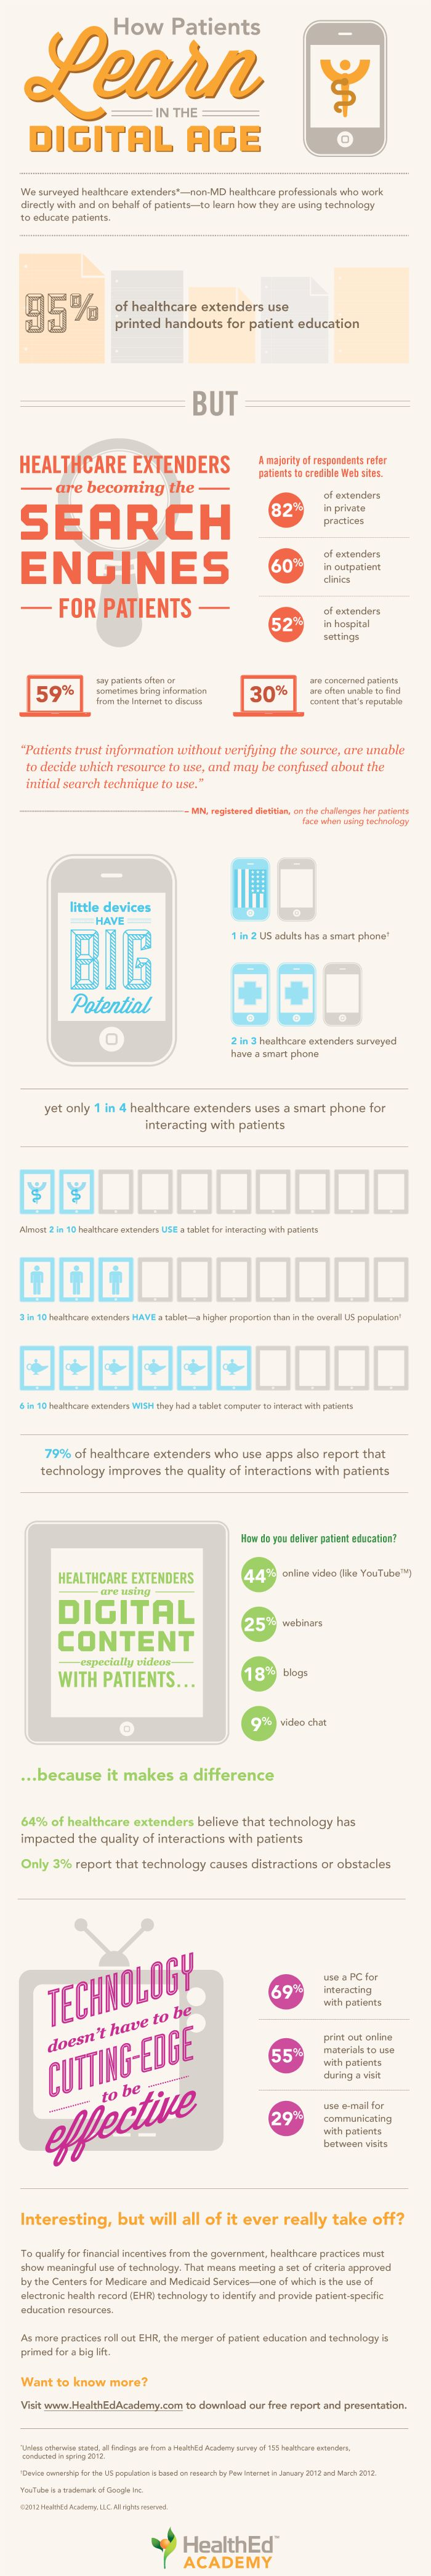 How Patients Learn in the Digital Age [Infographic Wednesdays]